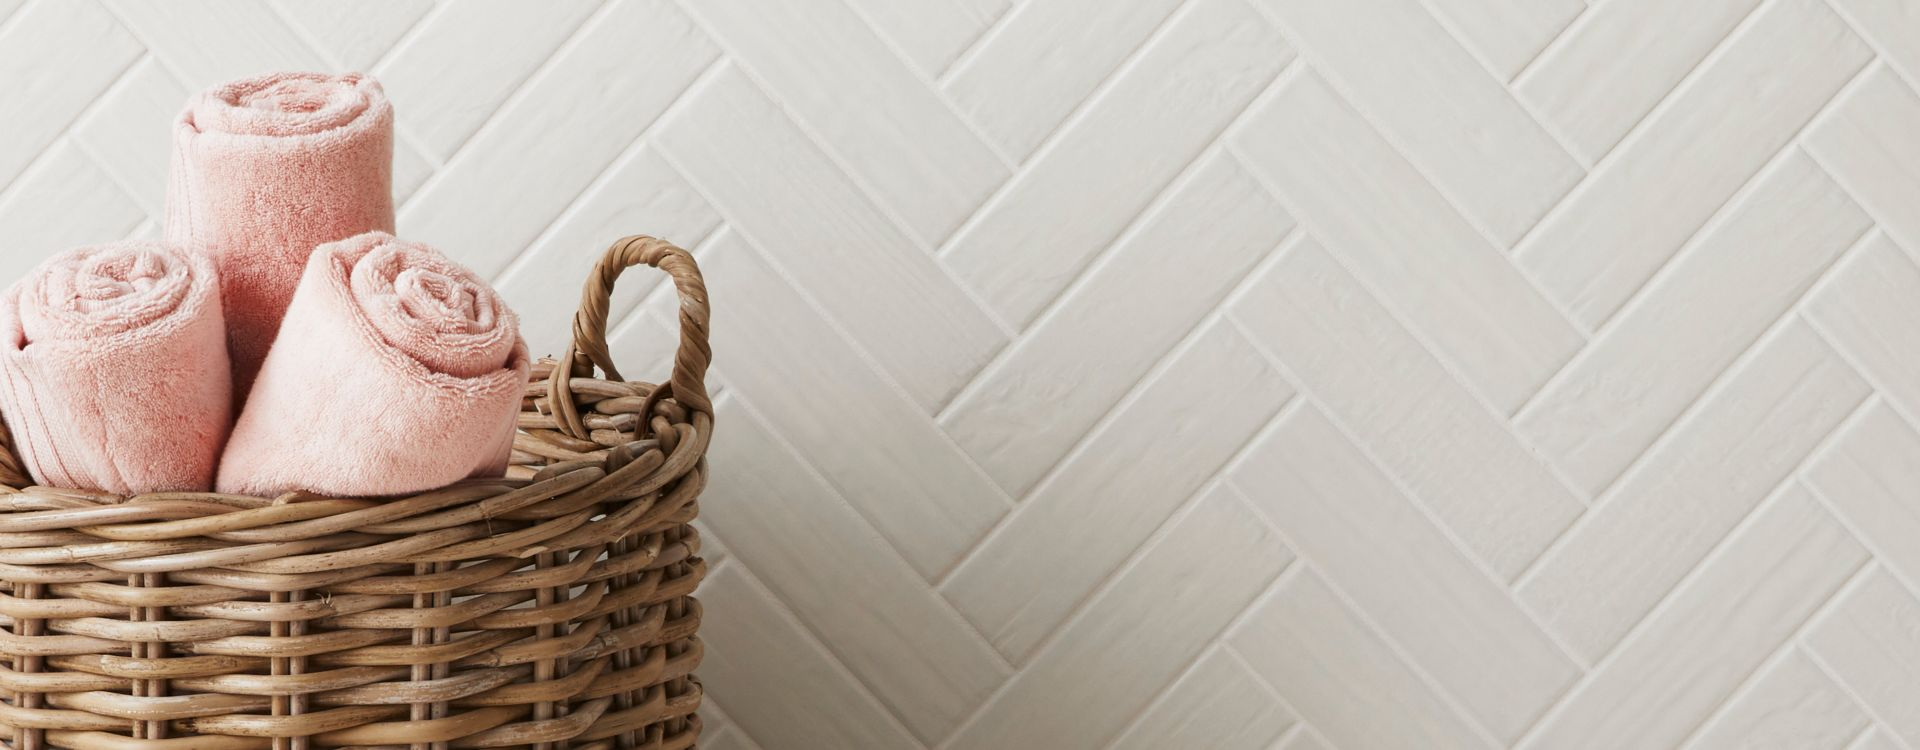 Laundry Room Tile Designs Trends Ideas For 2019 The Tile Shop